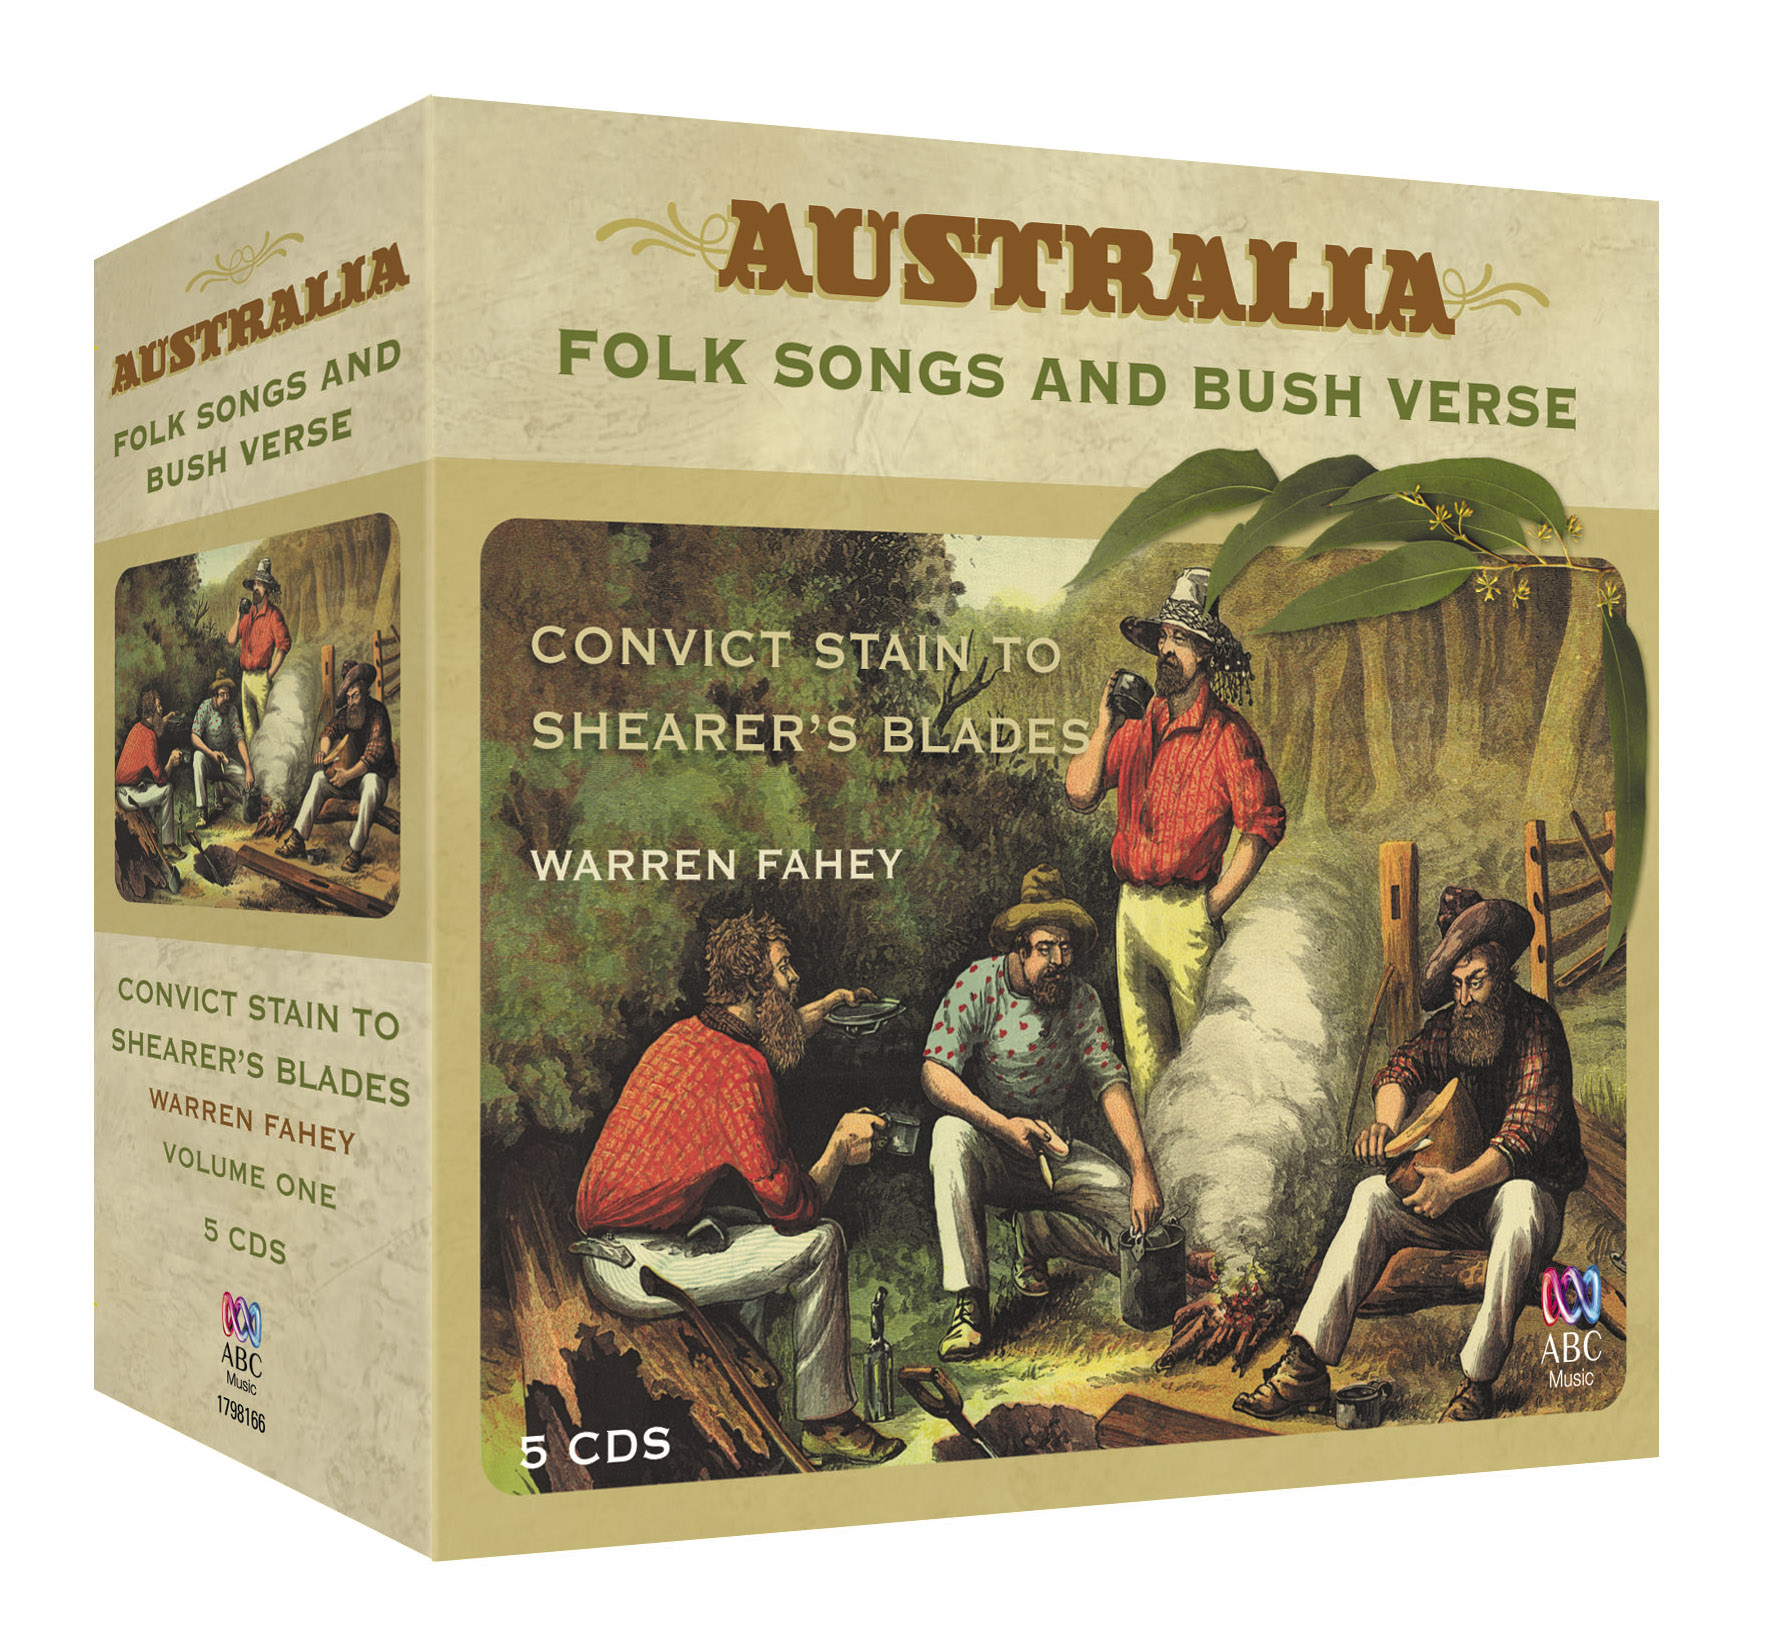 Australia: Its Folk Songs & Bush Verse: From Convict Chains to Shearer's  Blades  Box One